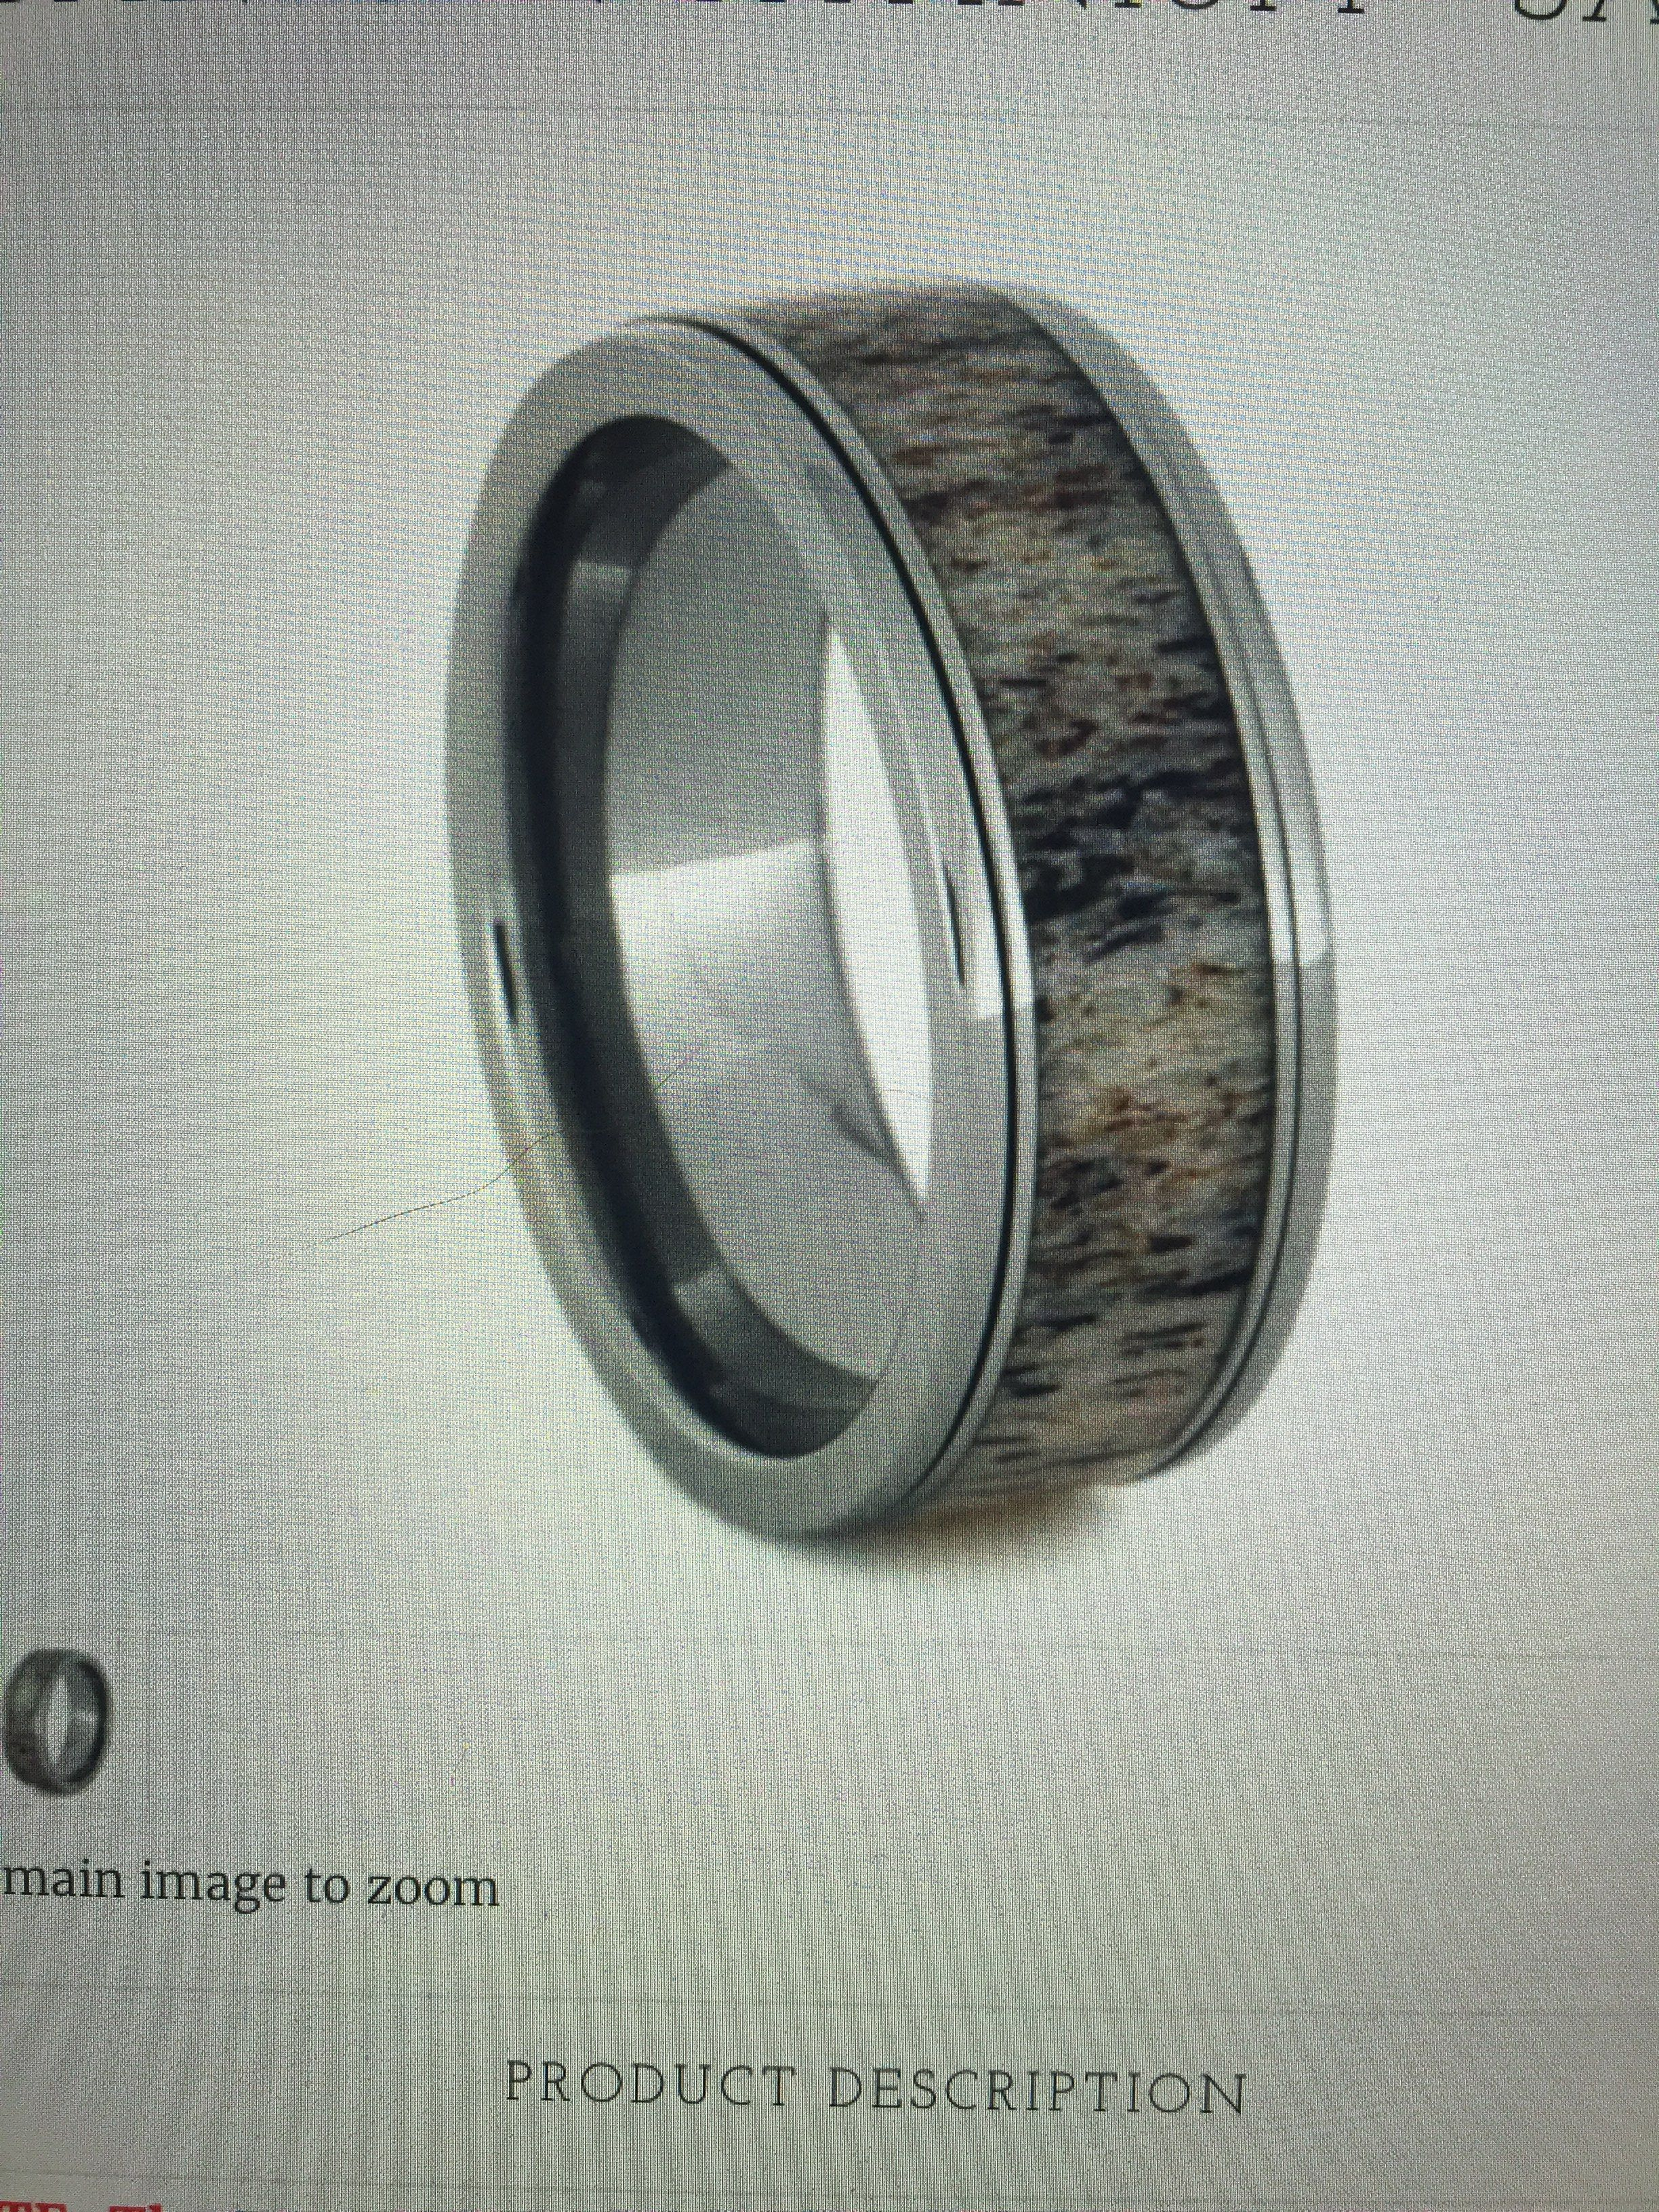 of richter beautiful titanium elk antler s inlay dale minter and jewelers ring amp ivory fresh horn wedding rings